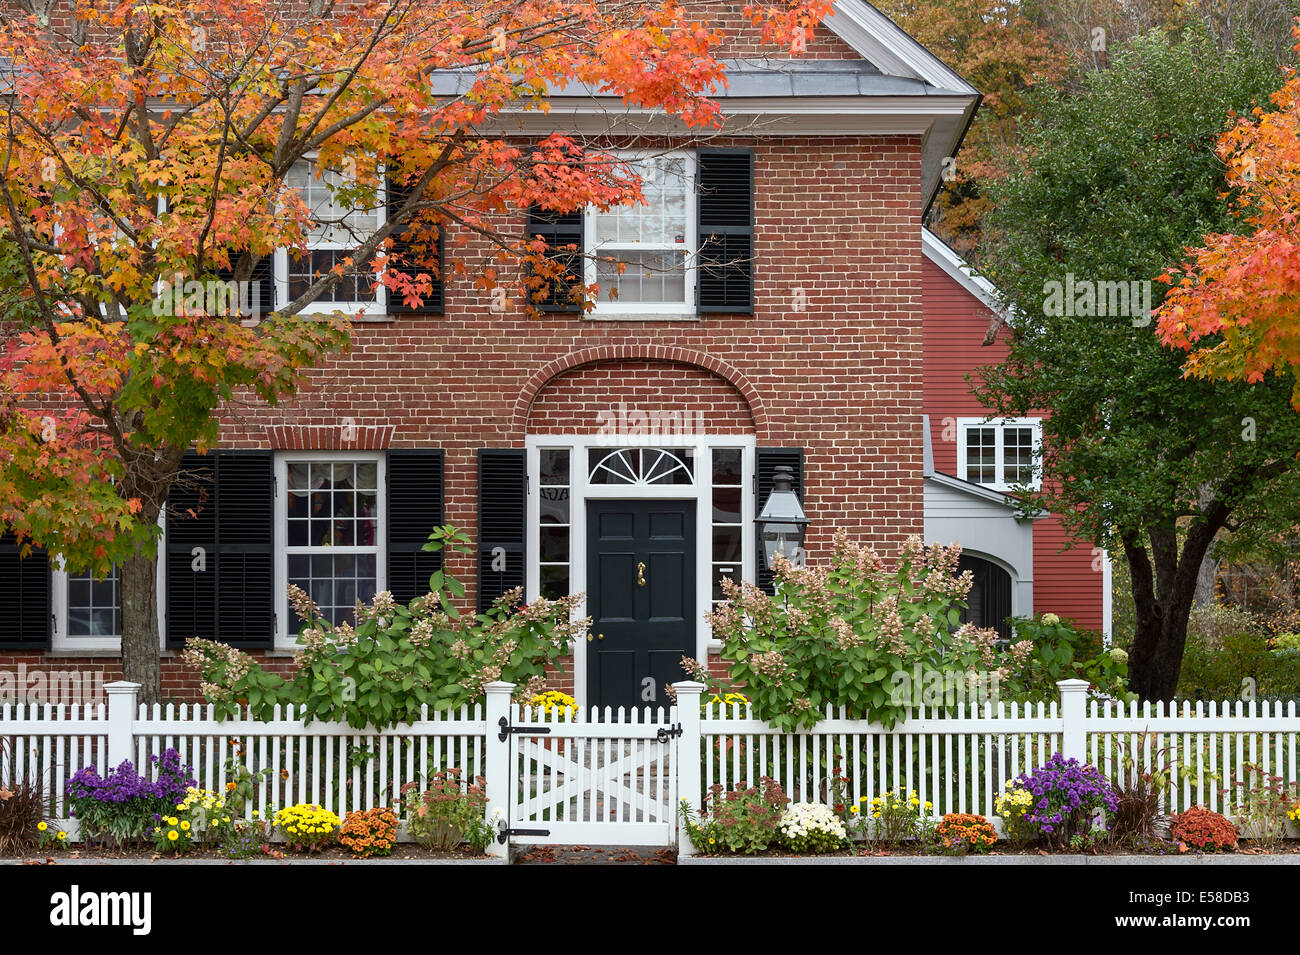 Charming New England brick house with picket fence, Grafton, Vermont, USA - Stock Image